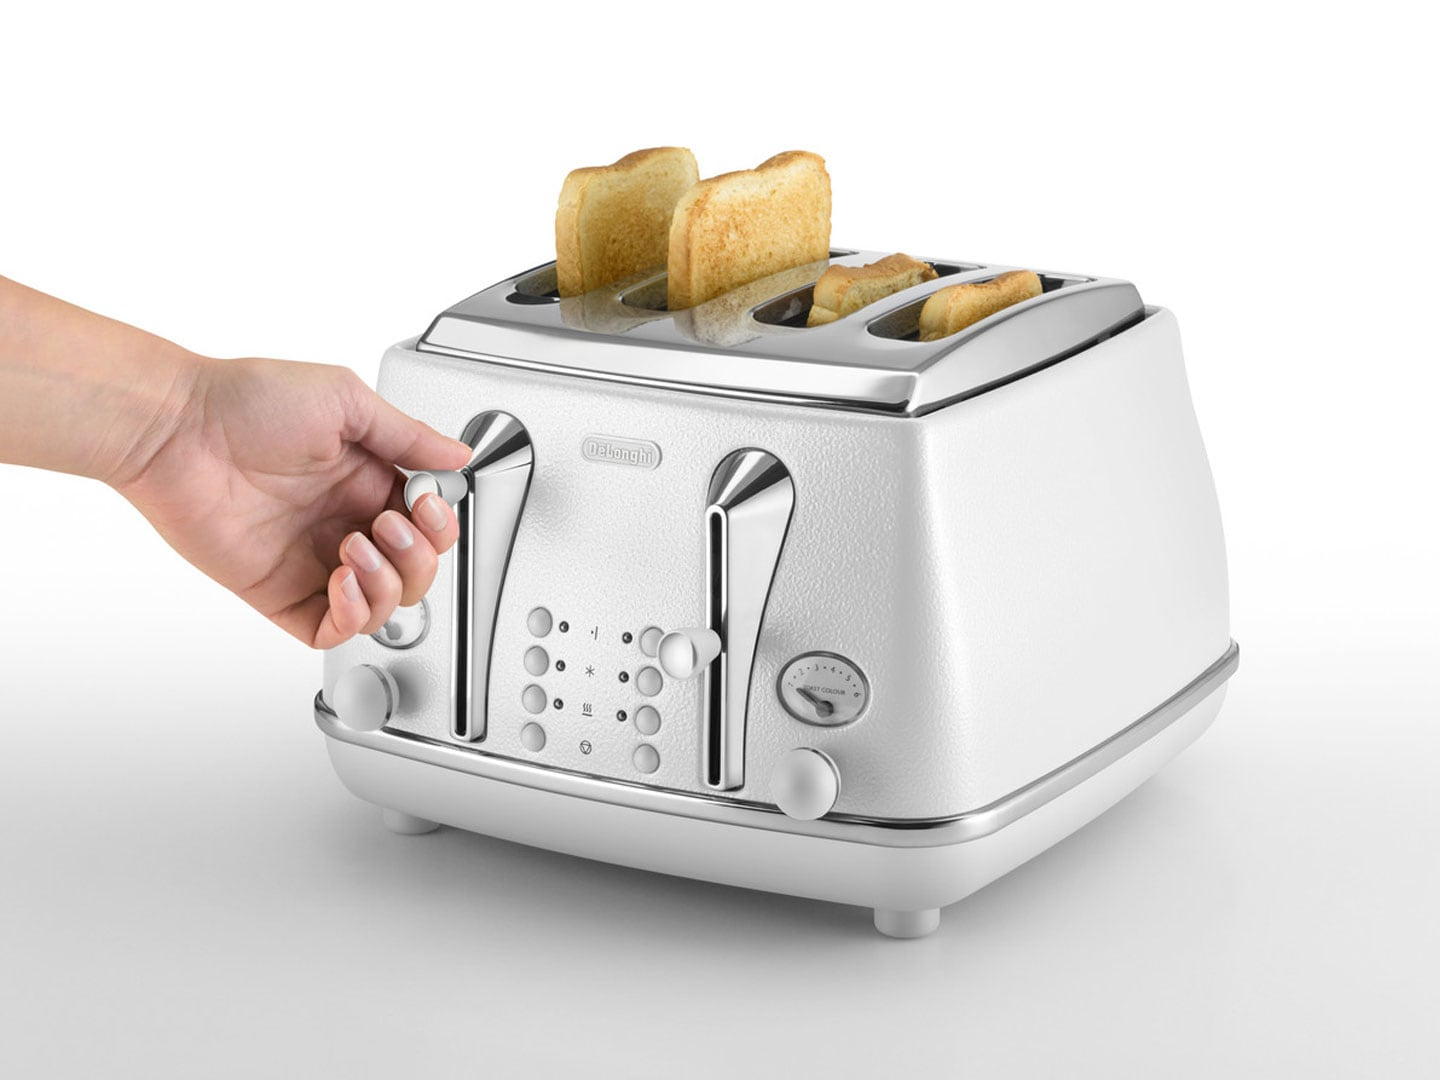 DeLonghi Icona Elements 4 Slice Toaster Cloud White CTOE4003W